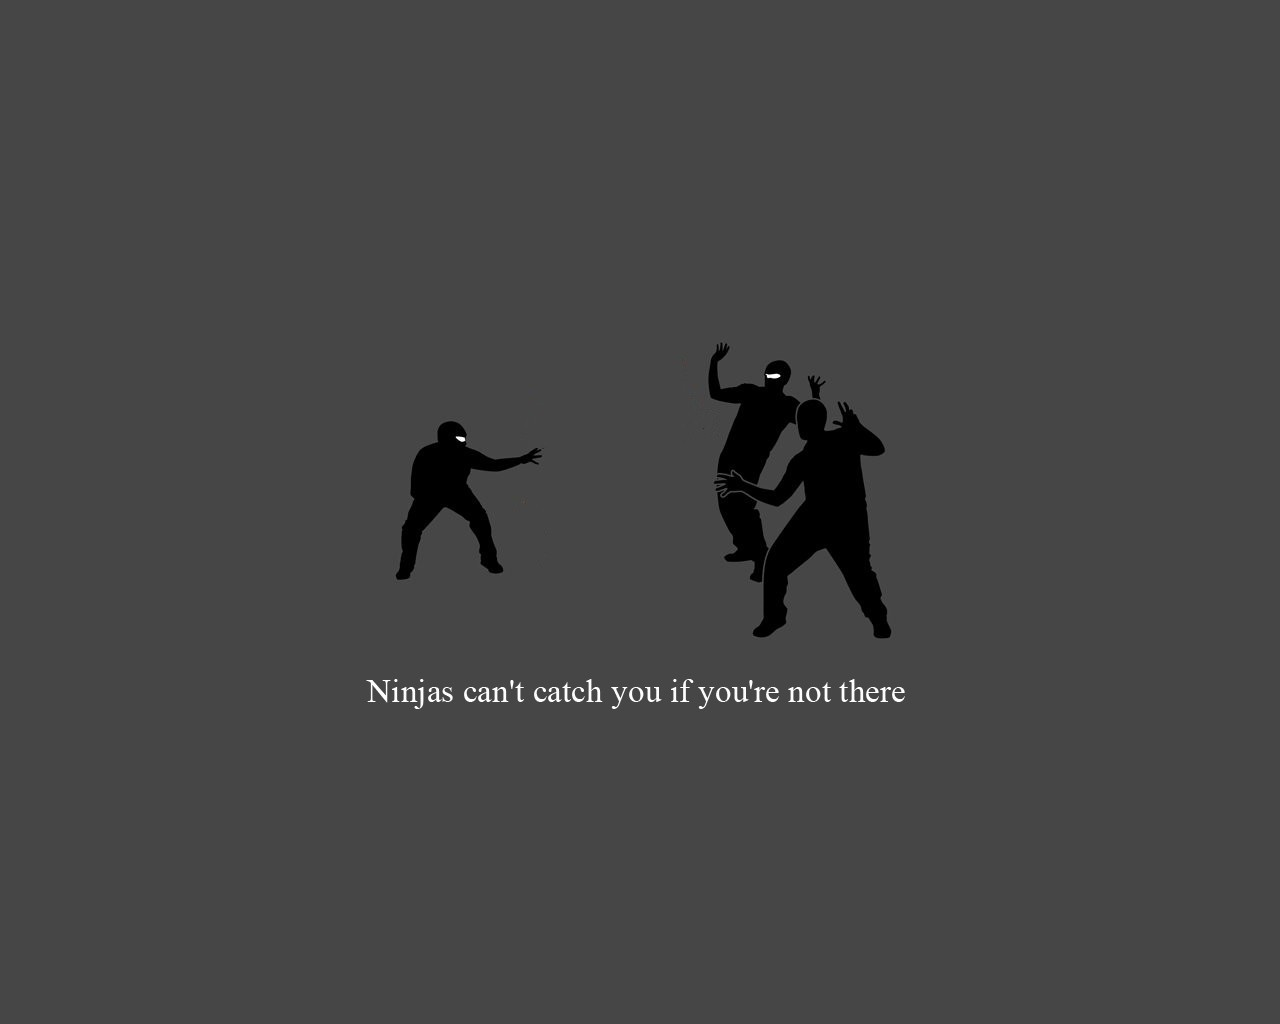 funny ninjas cant catch